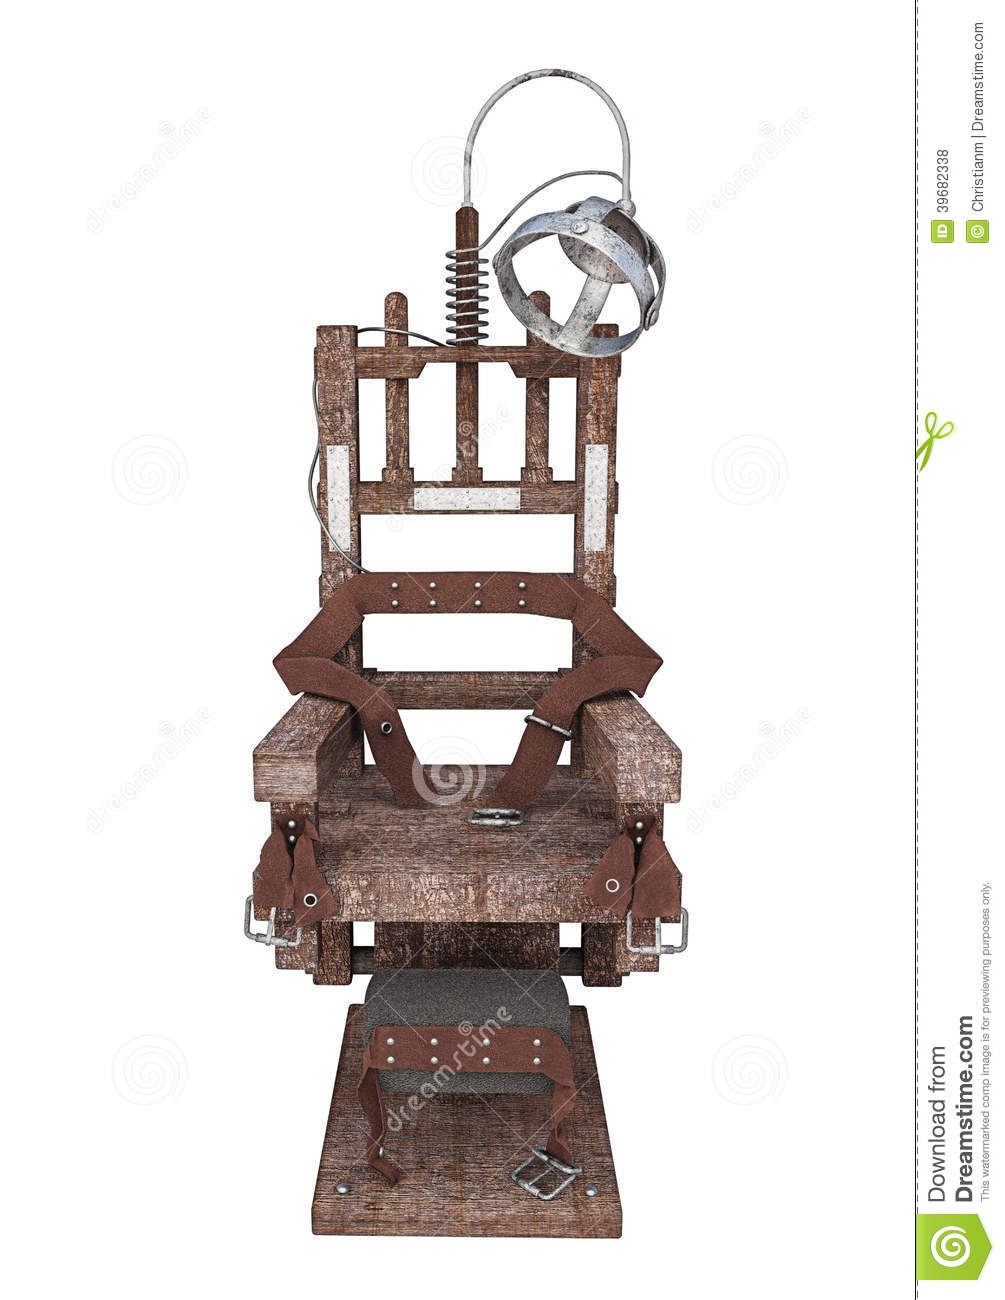 Electric chair stock illustration image 39682338 for Chaise electrique